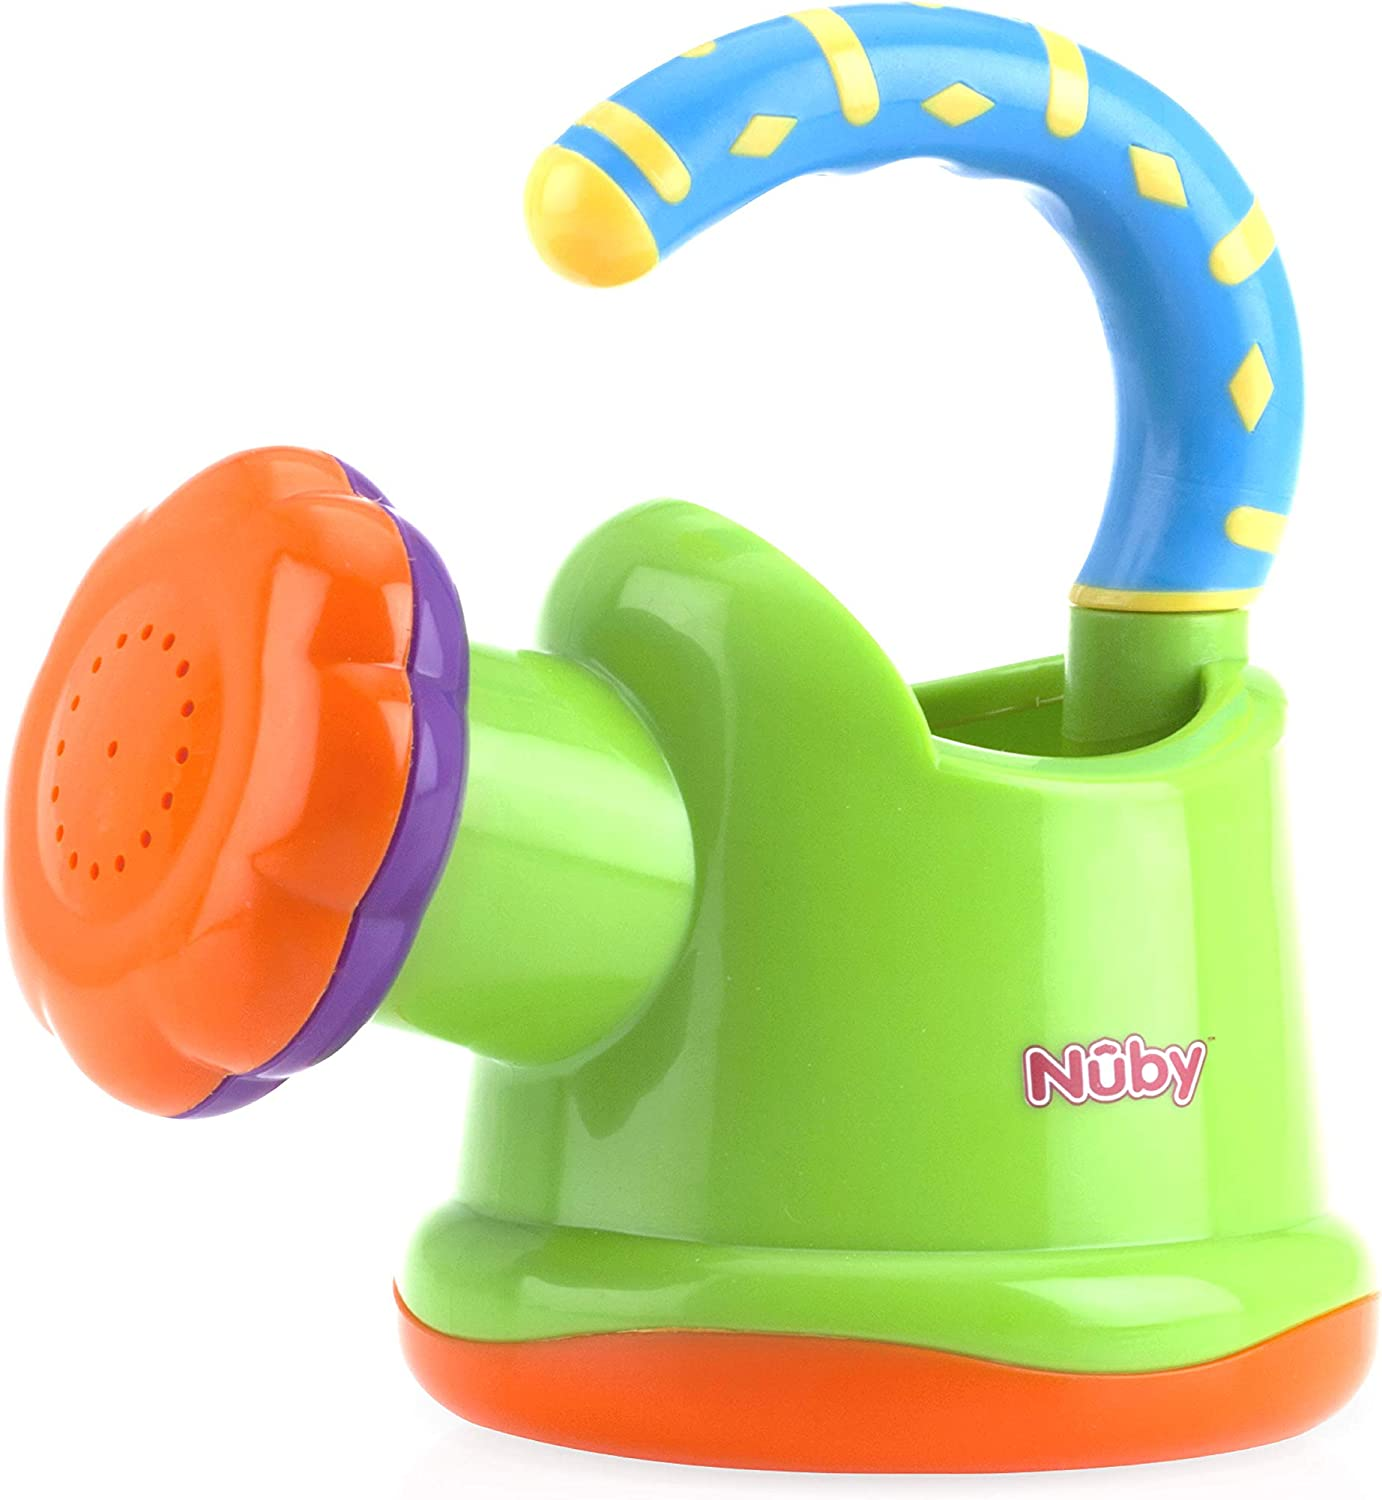 NEW Fun Watering Can Bath Toy Nuby S Fun Watering Can Makes Bath Tim BEST SELLER